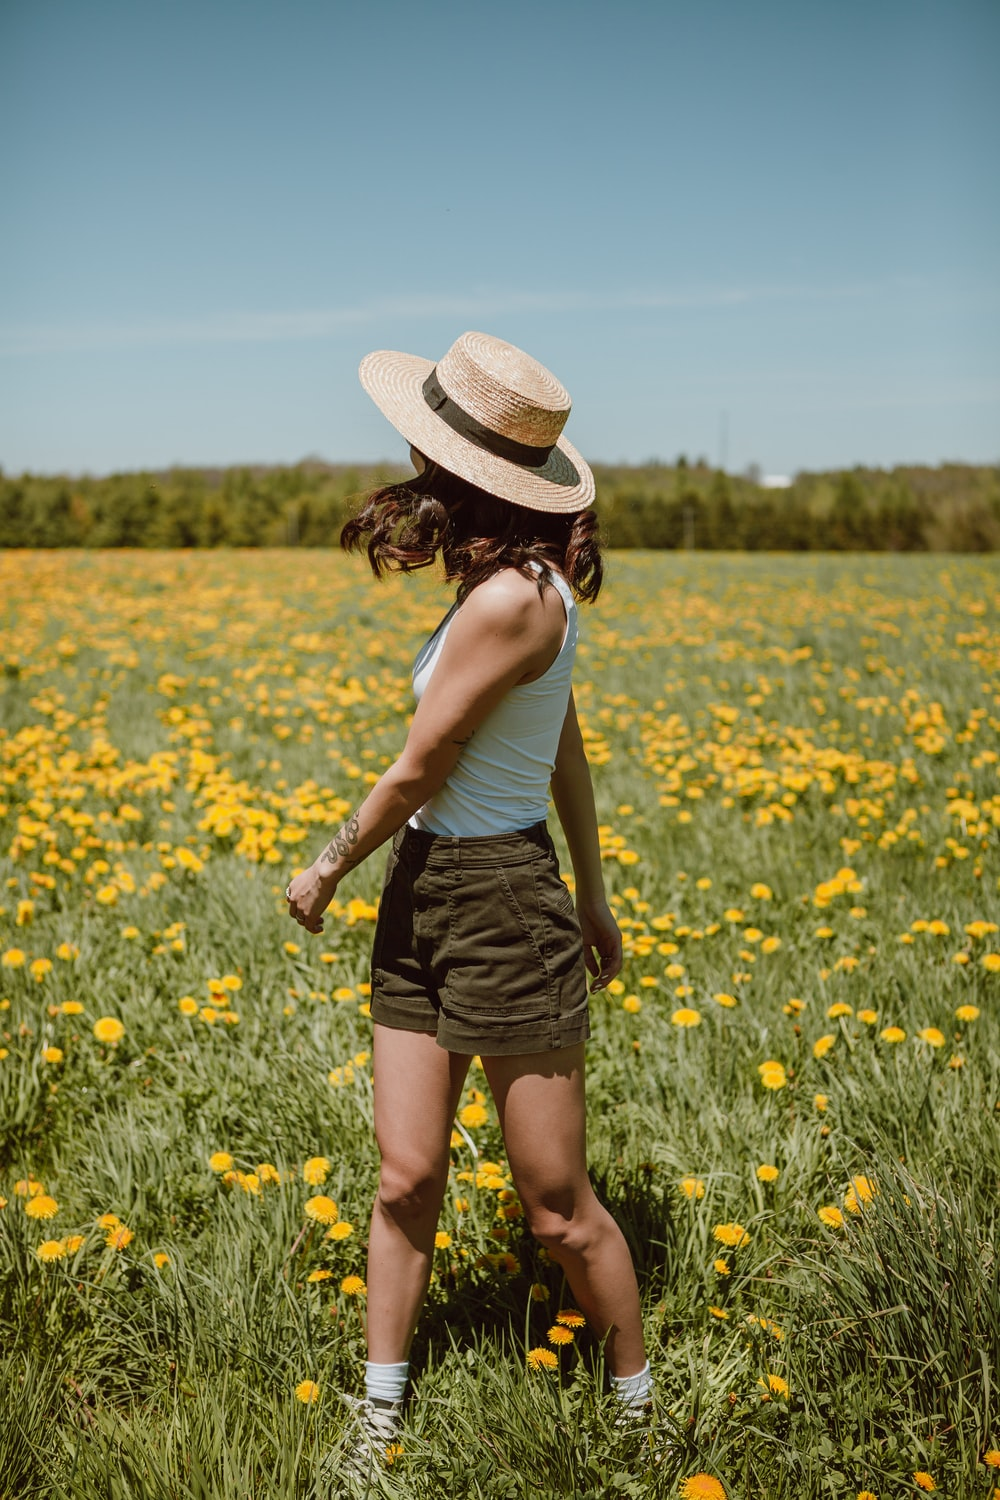 woman in white tank top and black skirt standing on yellow flower field during daytime